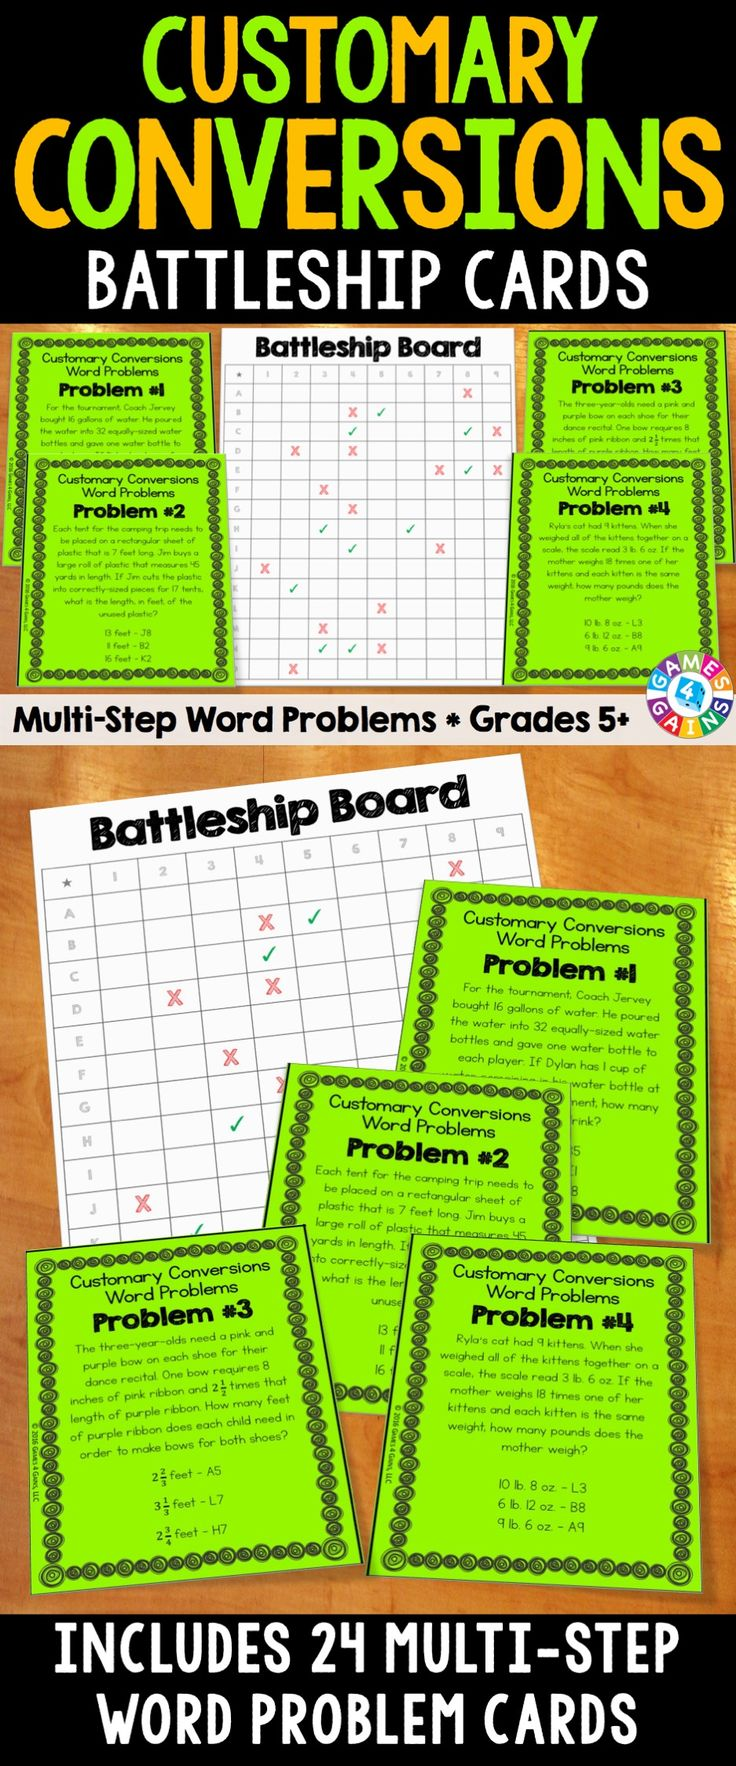 Customary Measurement Conversions Battleship Cards make solving multi-step word problems with CUSTOMARY conversions fun! Included are 24 challenging multi-step word problem cards and a single-player battleship board for students to solve as they work their way through each problem.